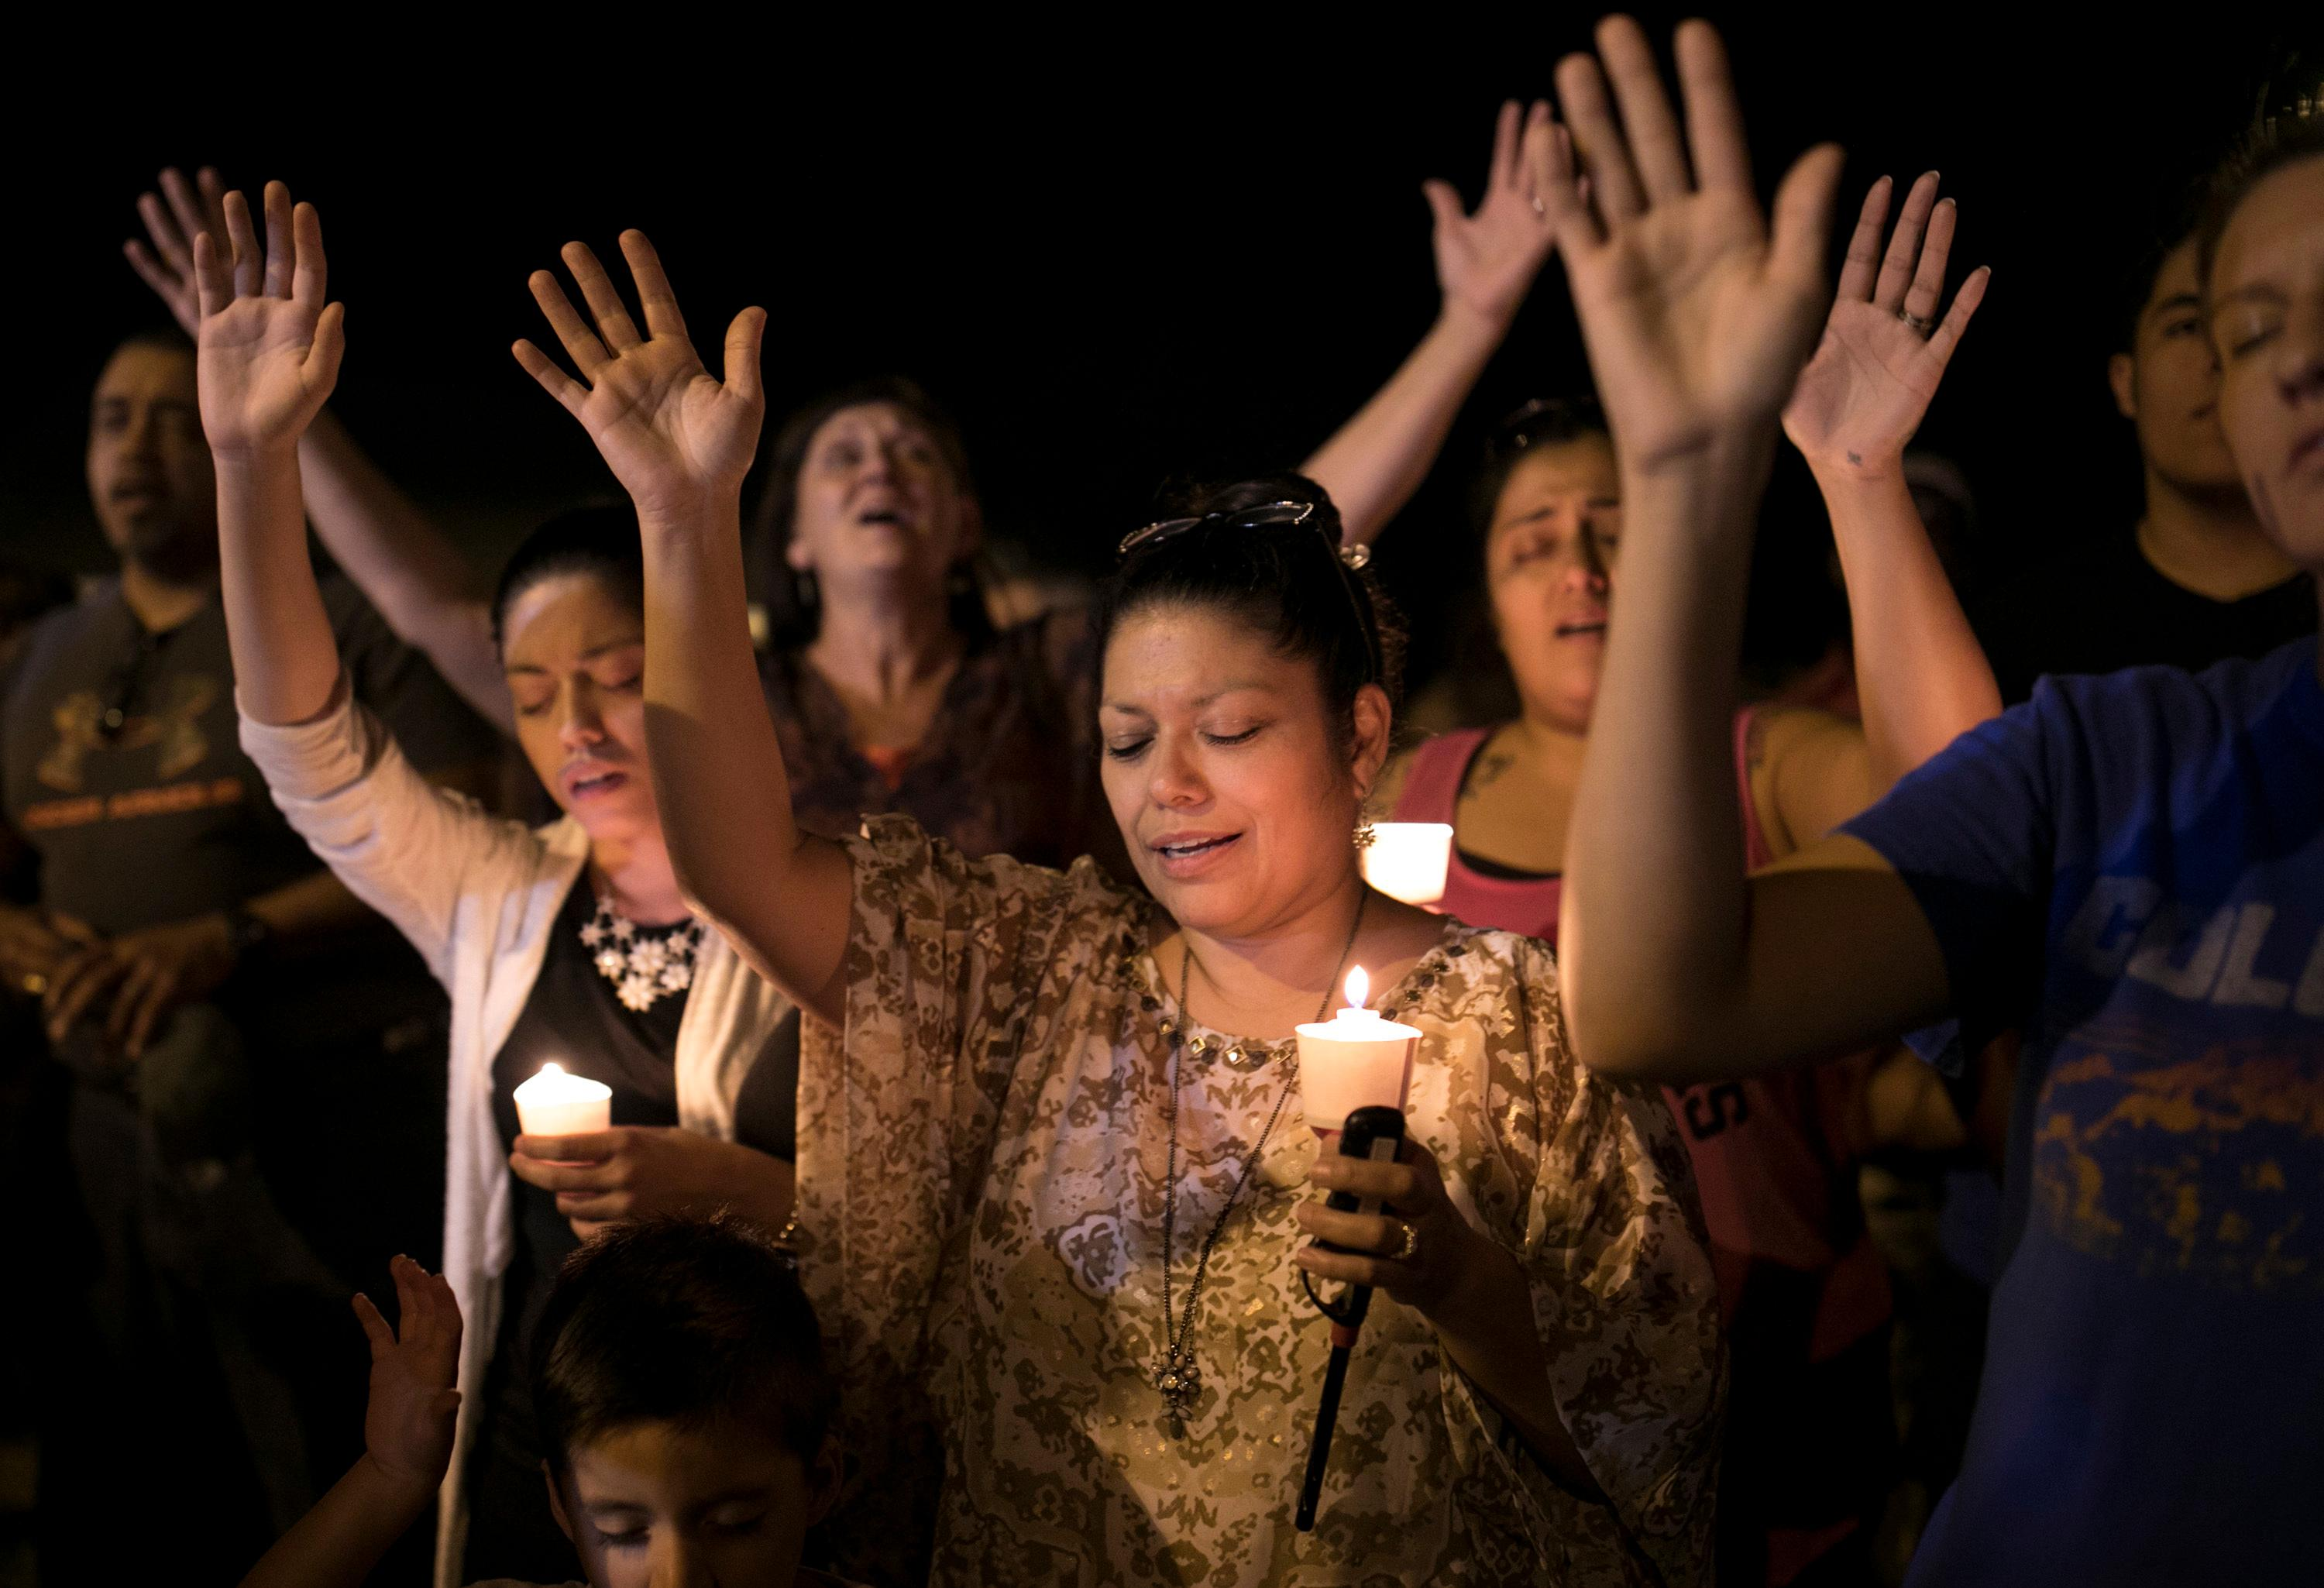 Mourners participate during a candlelight vigil held for the victims of a fatal shooting at the First Baptist Church of Sutherland Springs, Sunday, Nov. 5, 2017, in Sutherland Springs, Texas. (Jay Janner/Austin American-Statesman via AP)